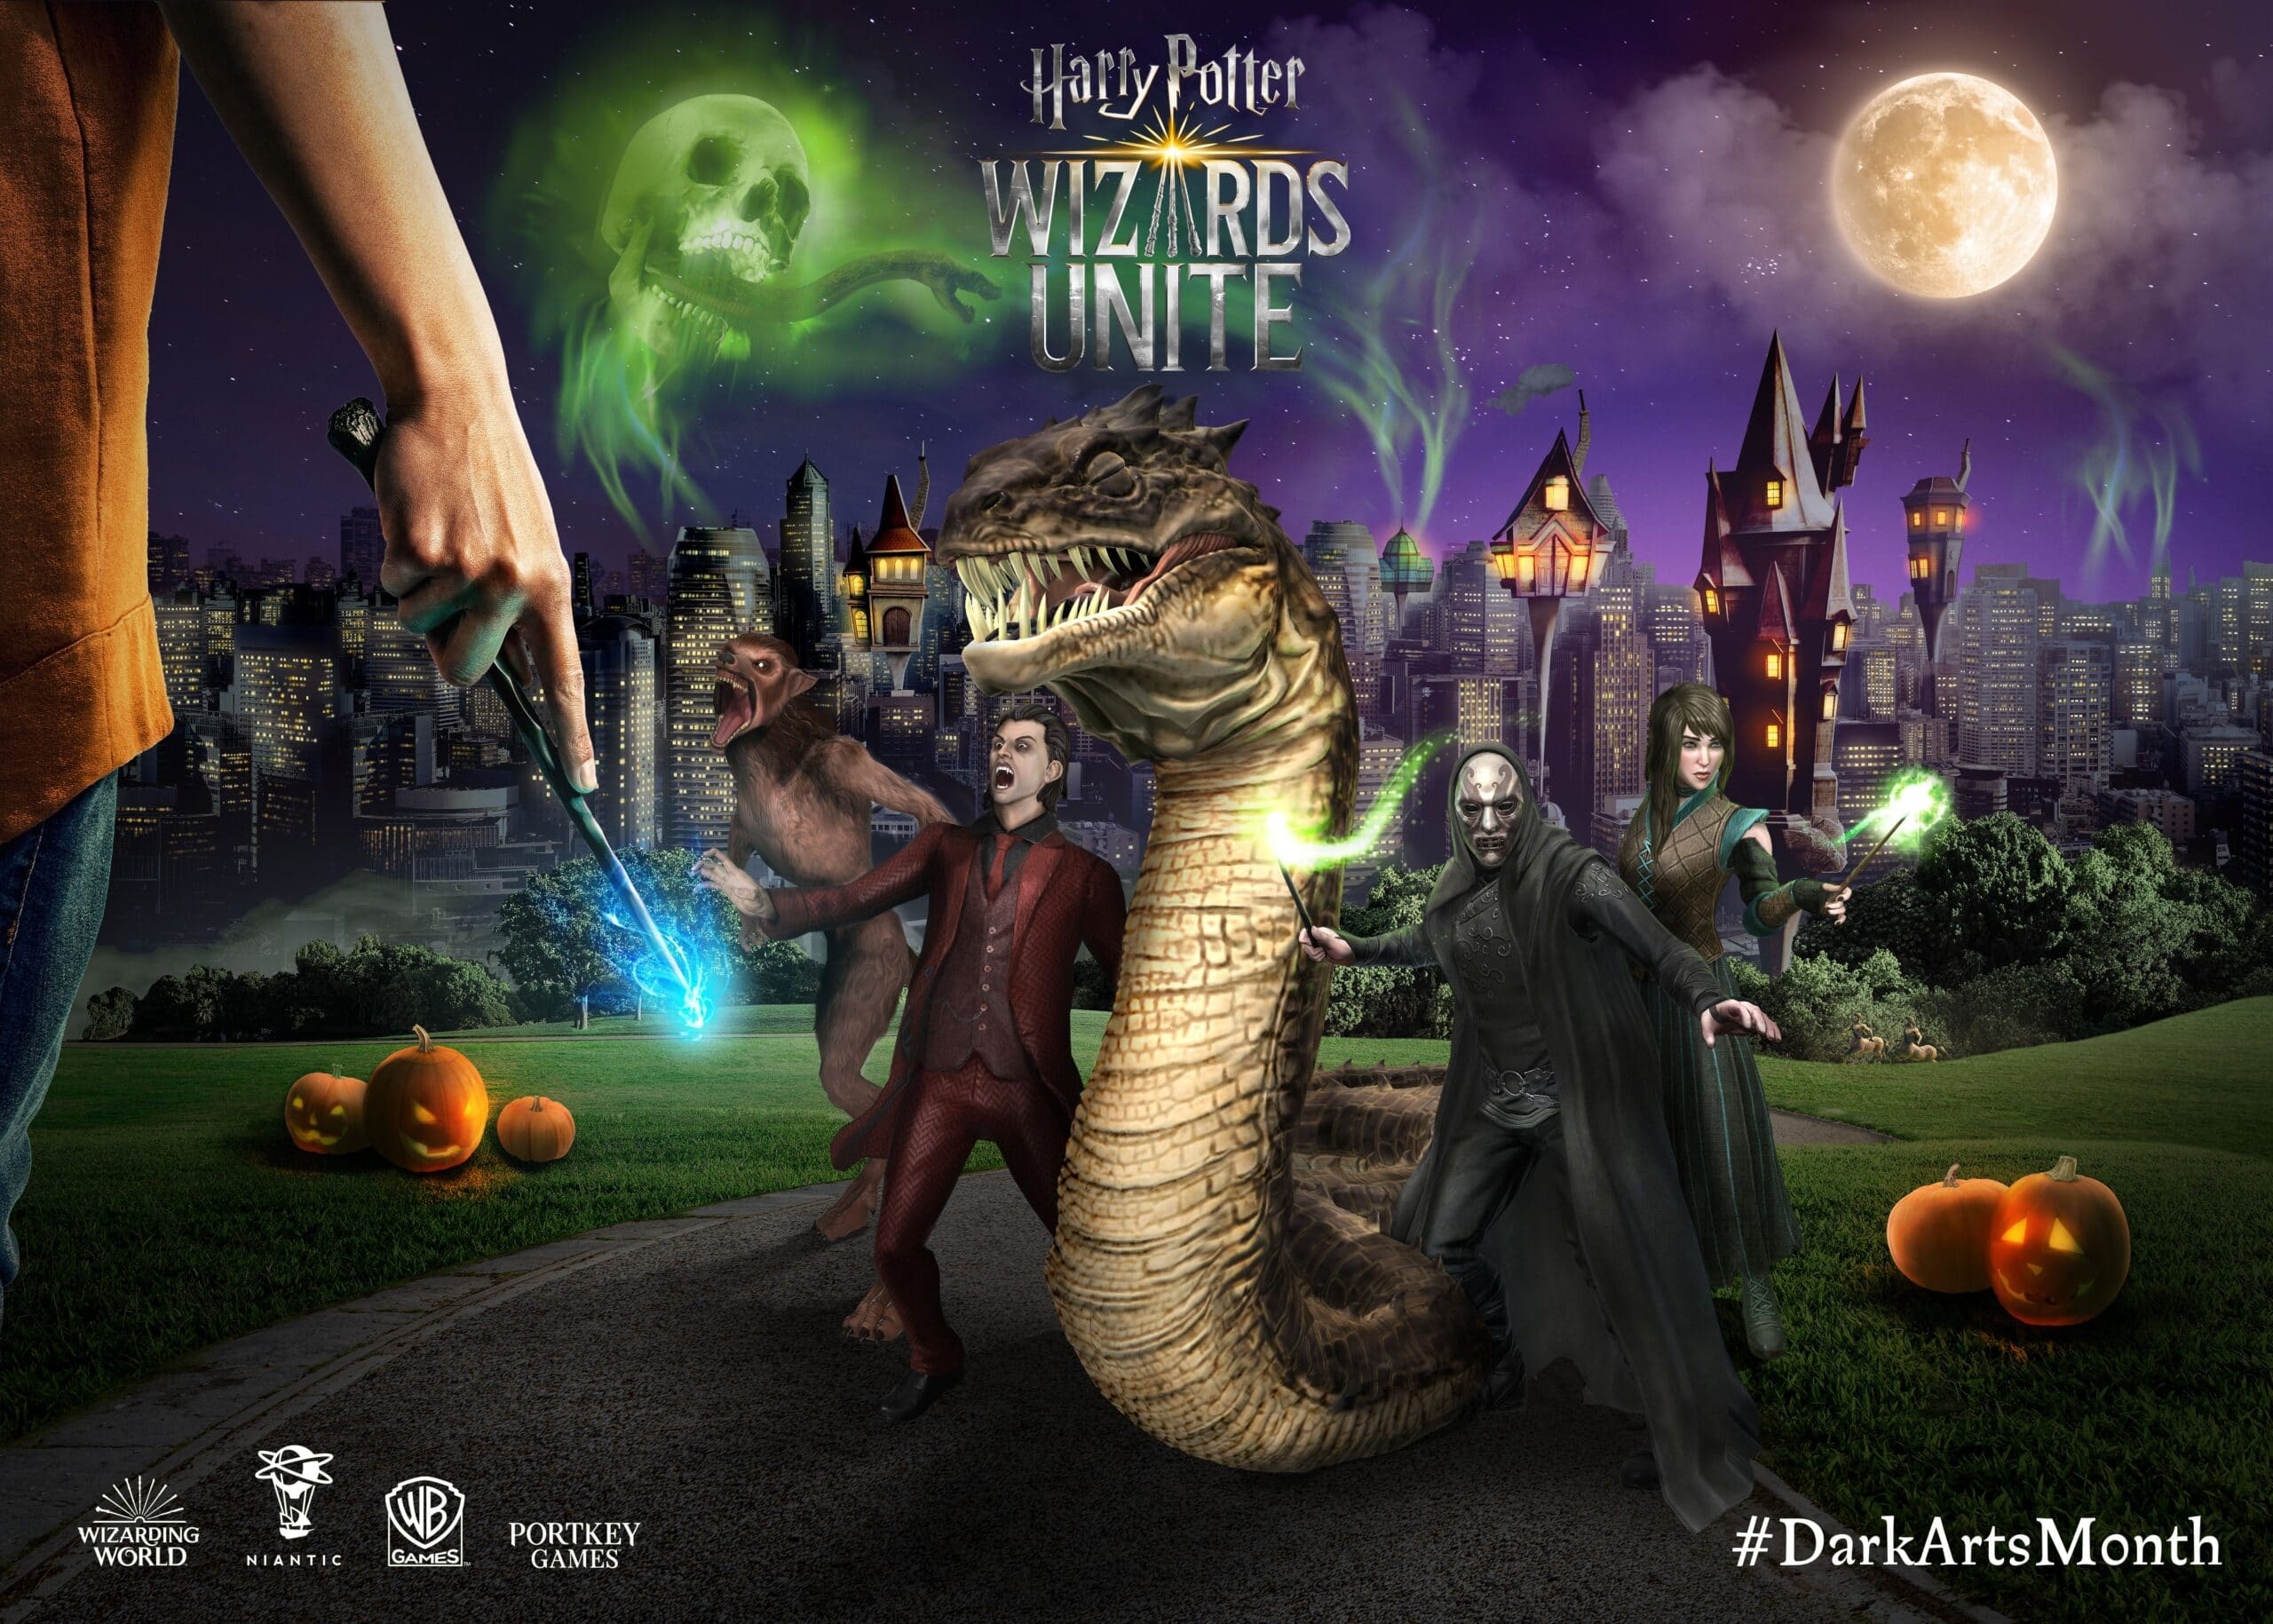 Harry Potter Wizards Unite - Detalles de Harrowing Evento de Halloween